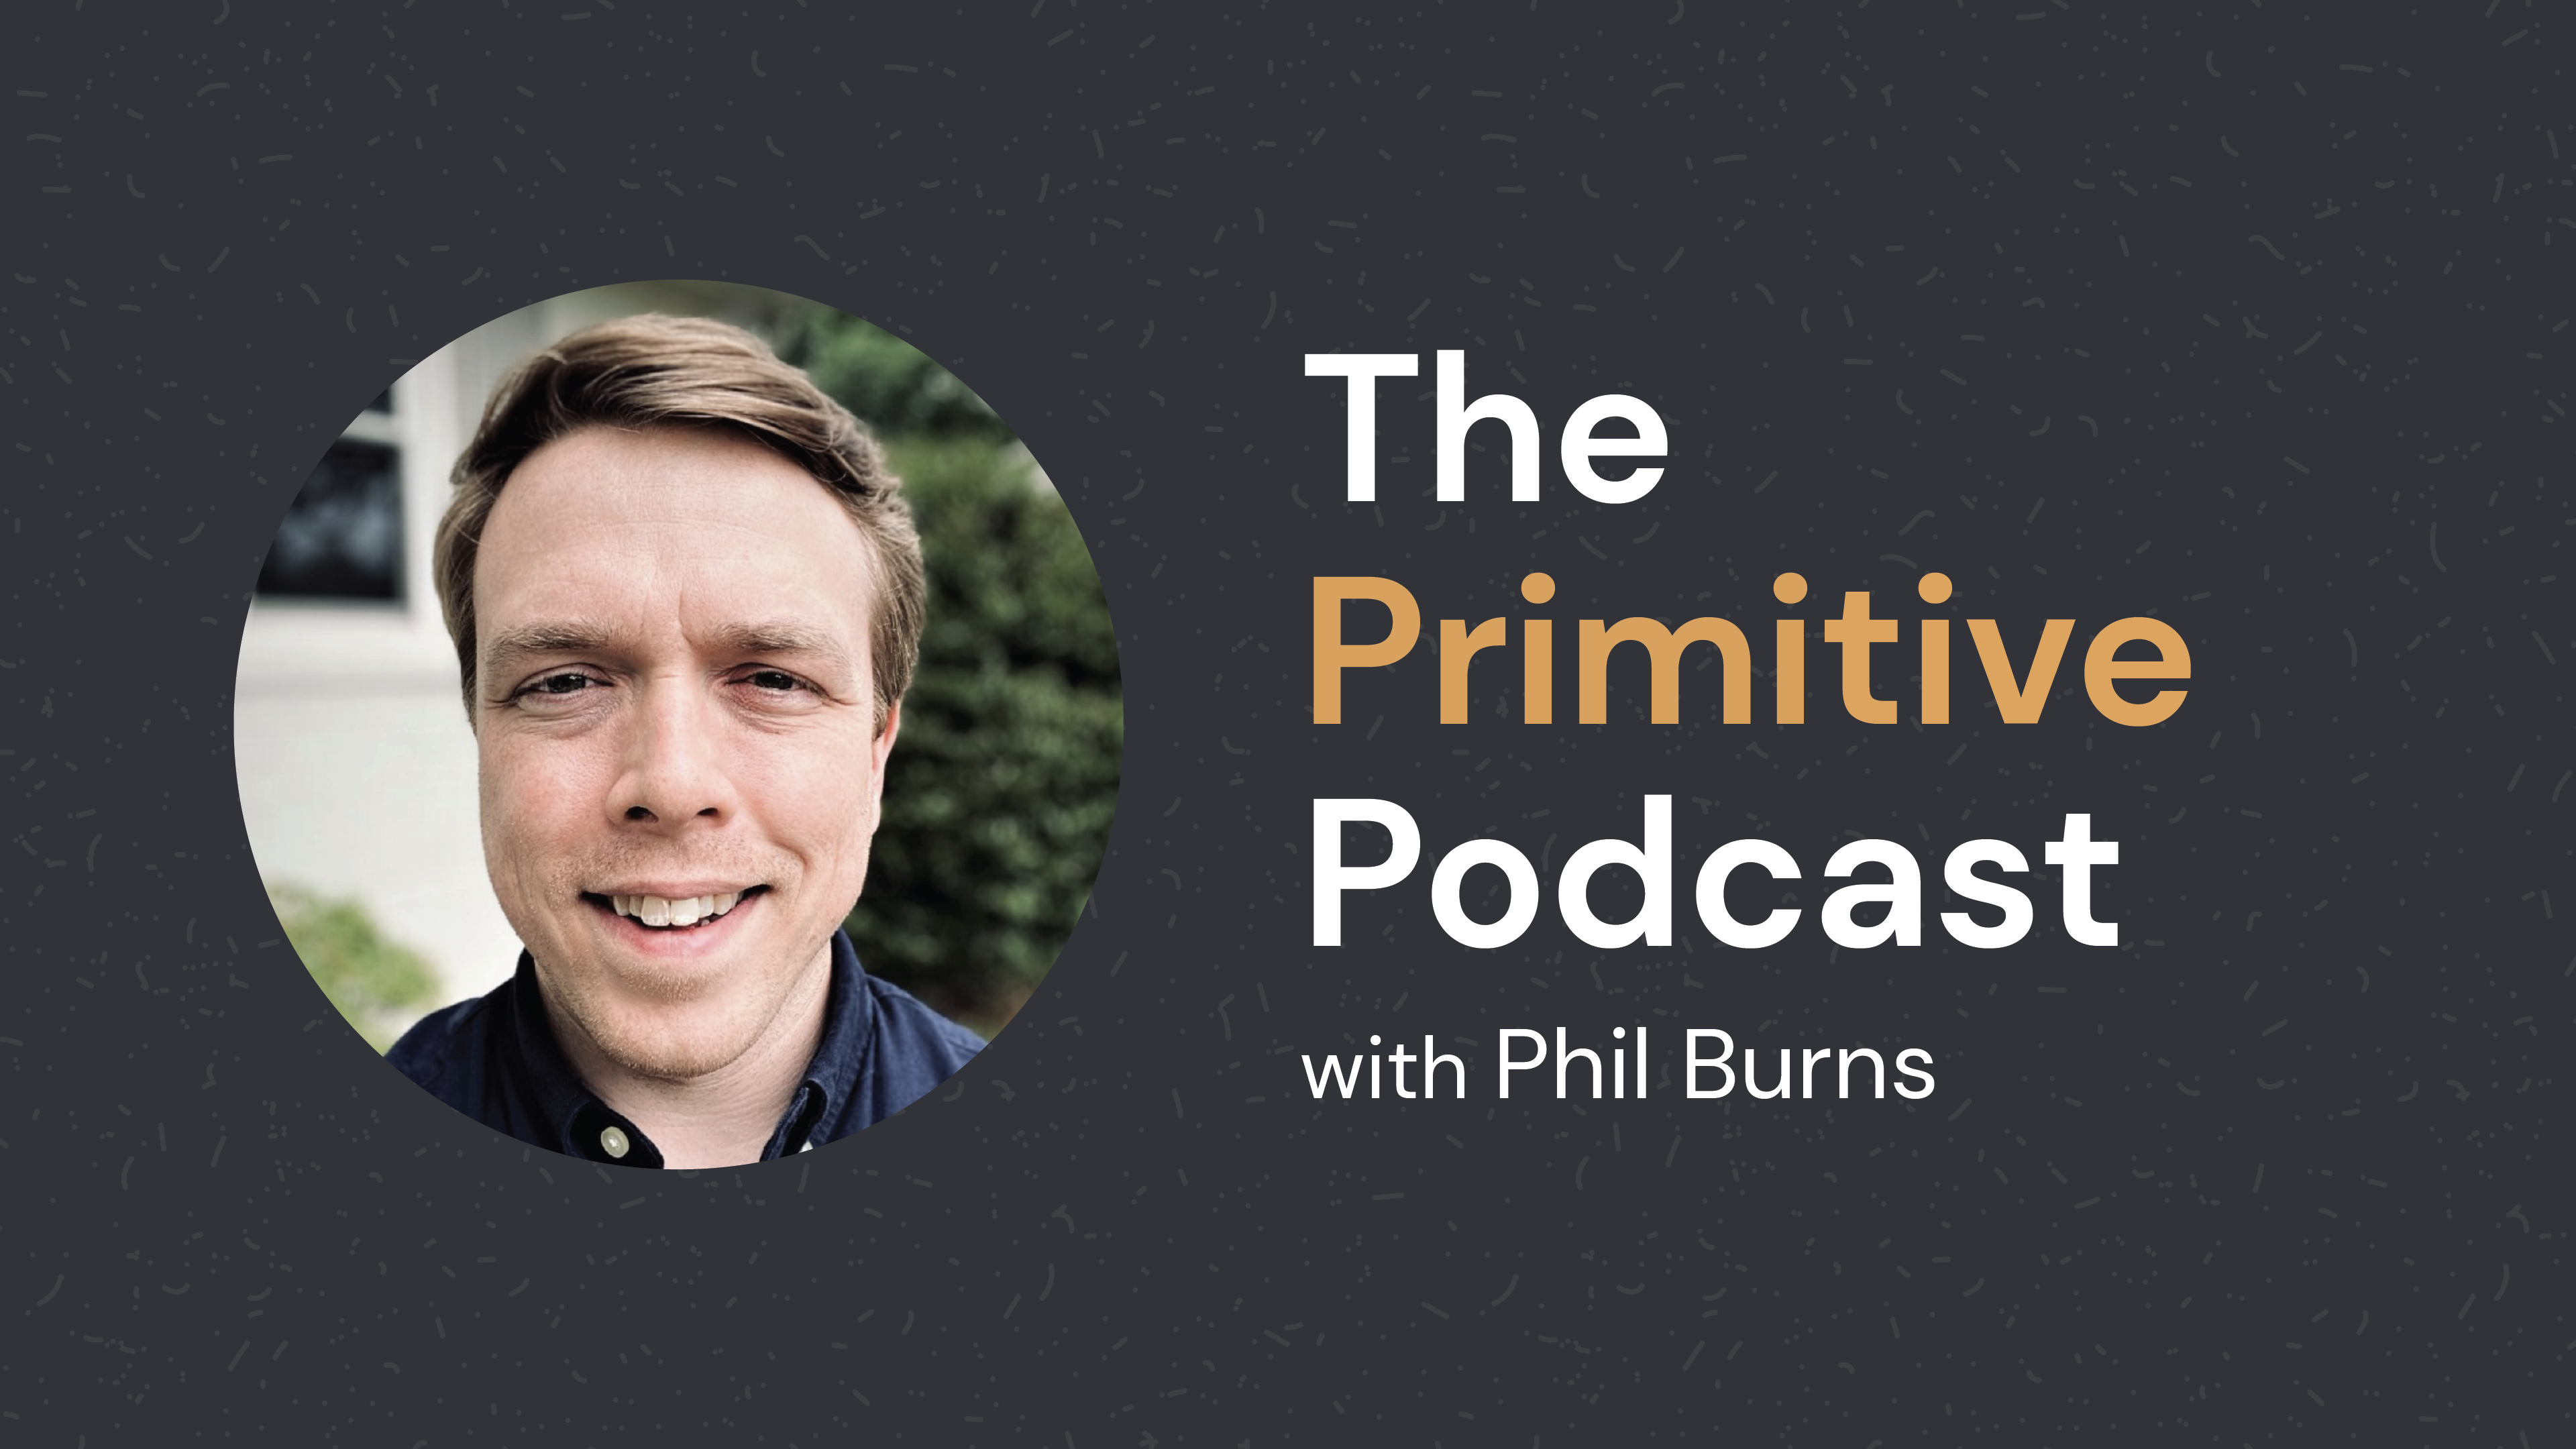 The Primitive Podcast with Phil Burns